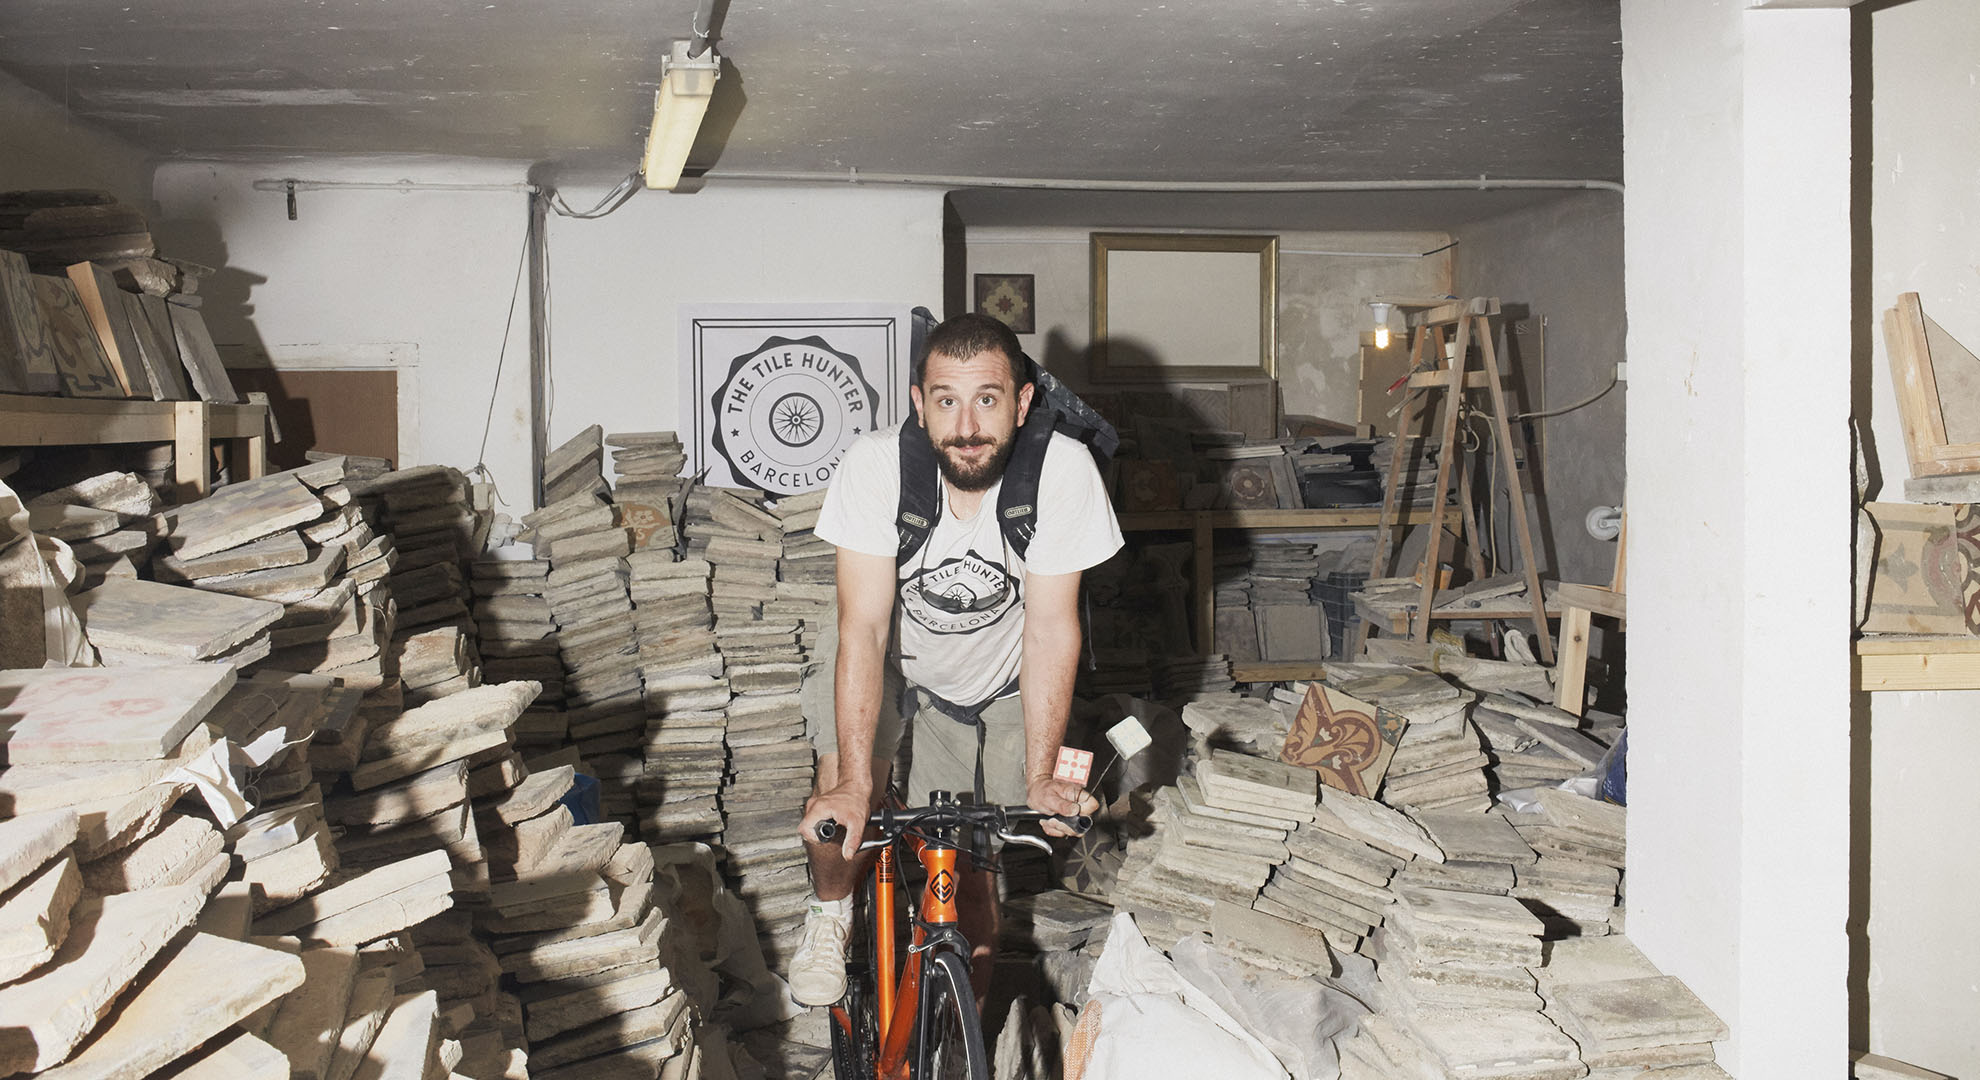 Joel Canovas surrounded by hydraulic tiles